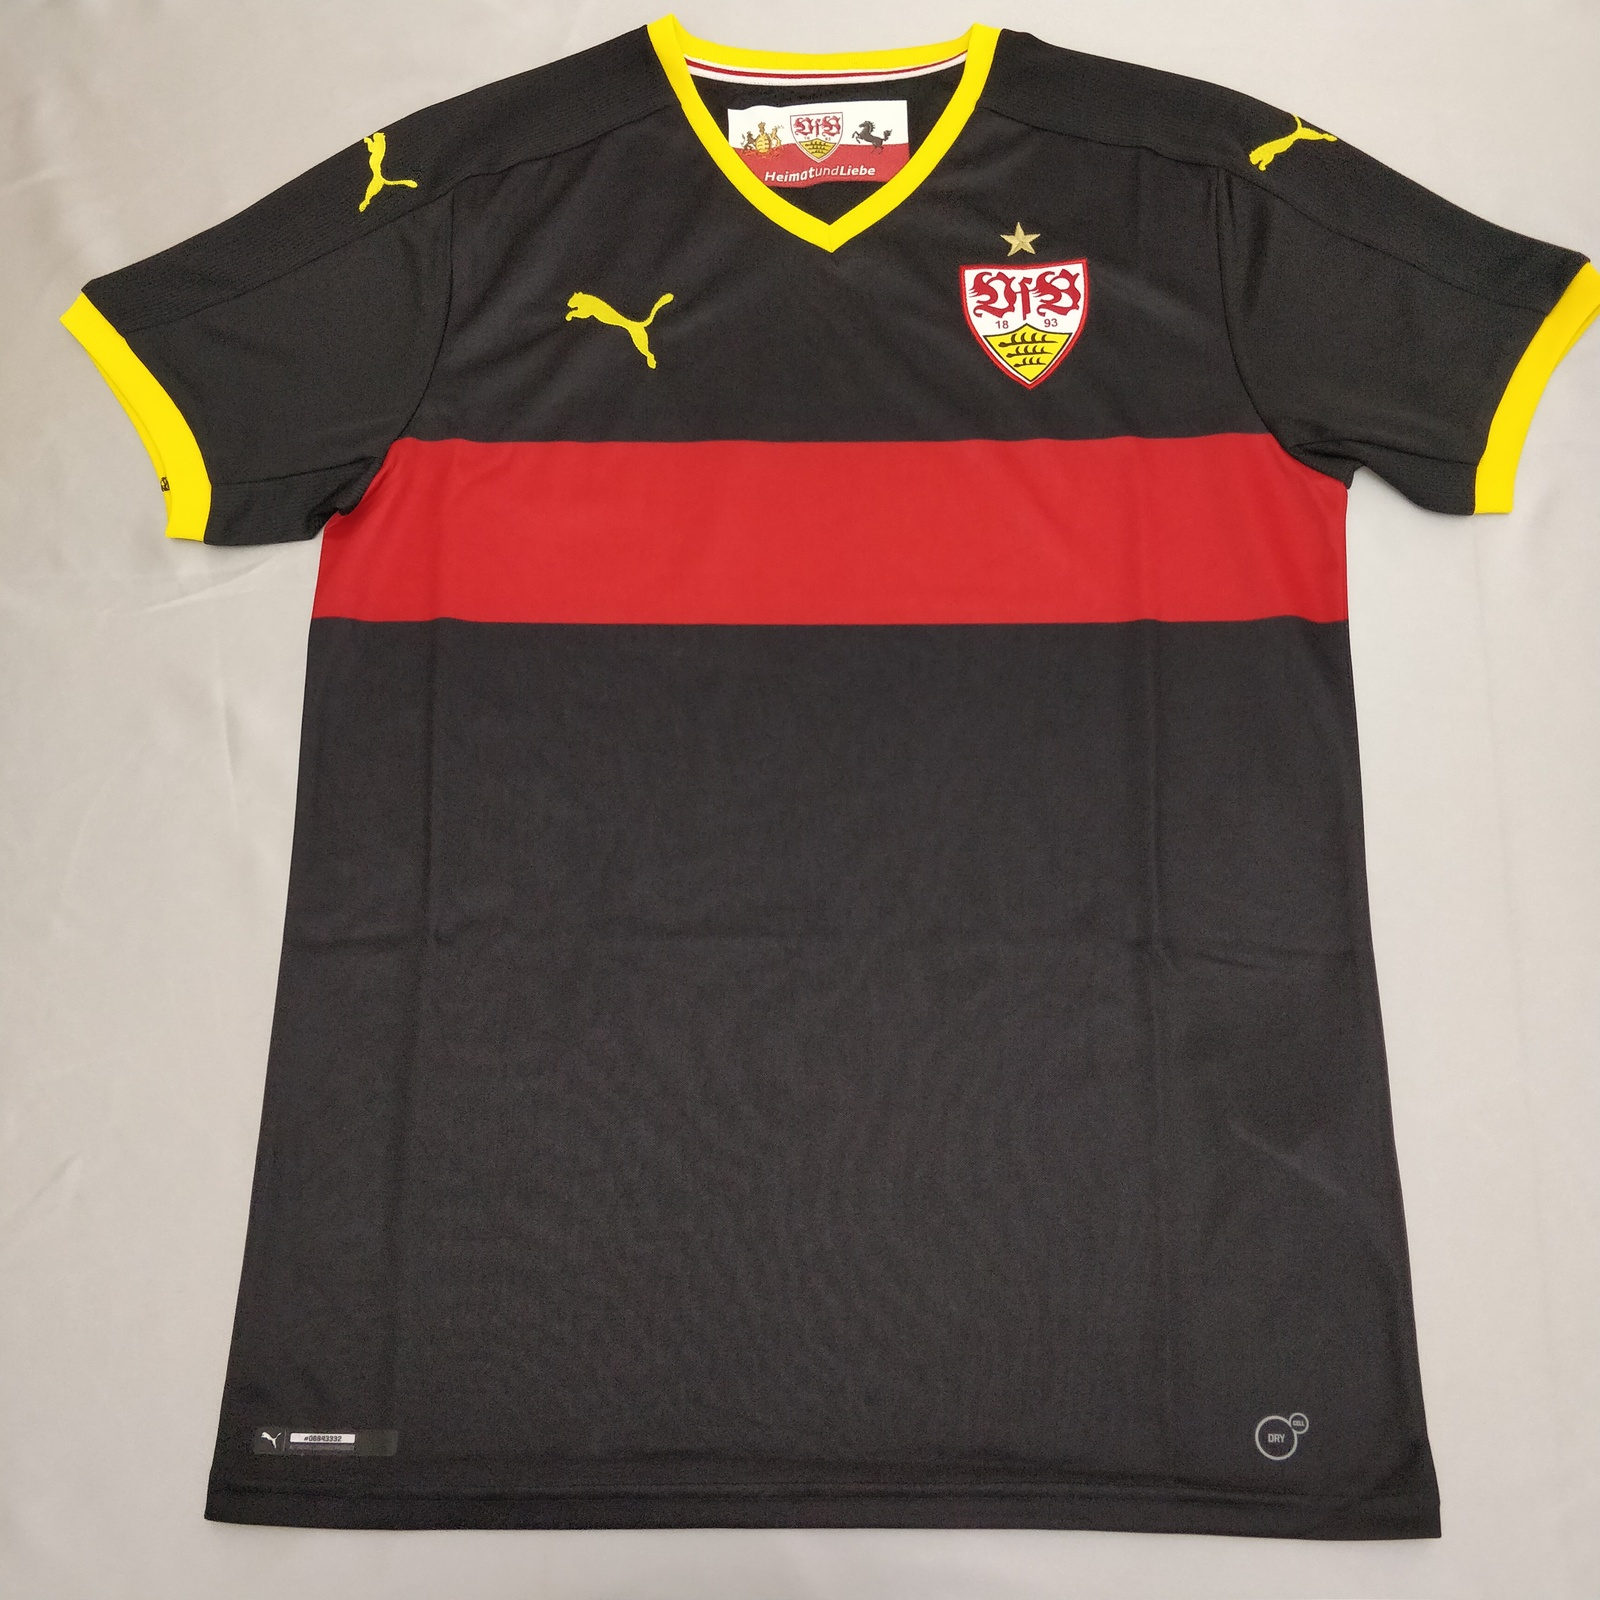 Primary image for Stuttgart 15/16 Third Jersey Puma Fans Version %100 Authentic No sponsors